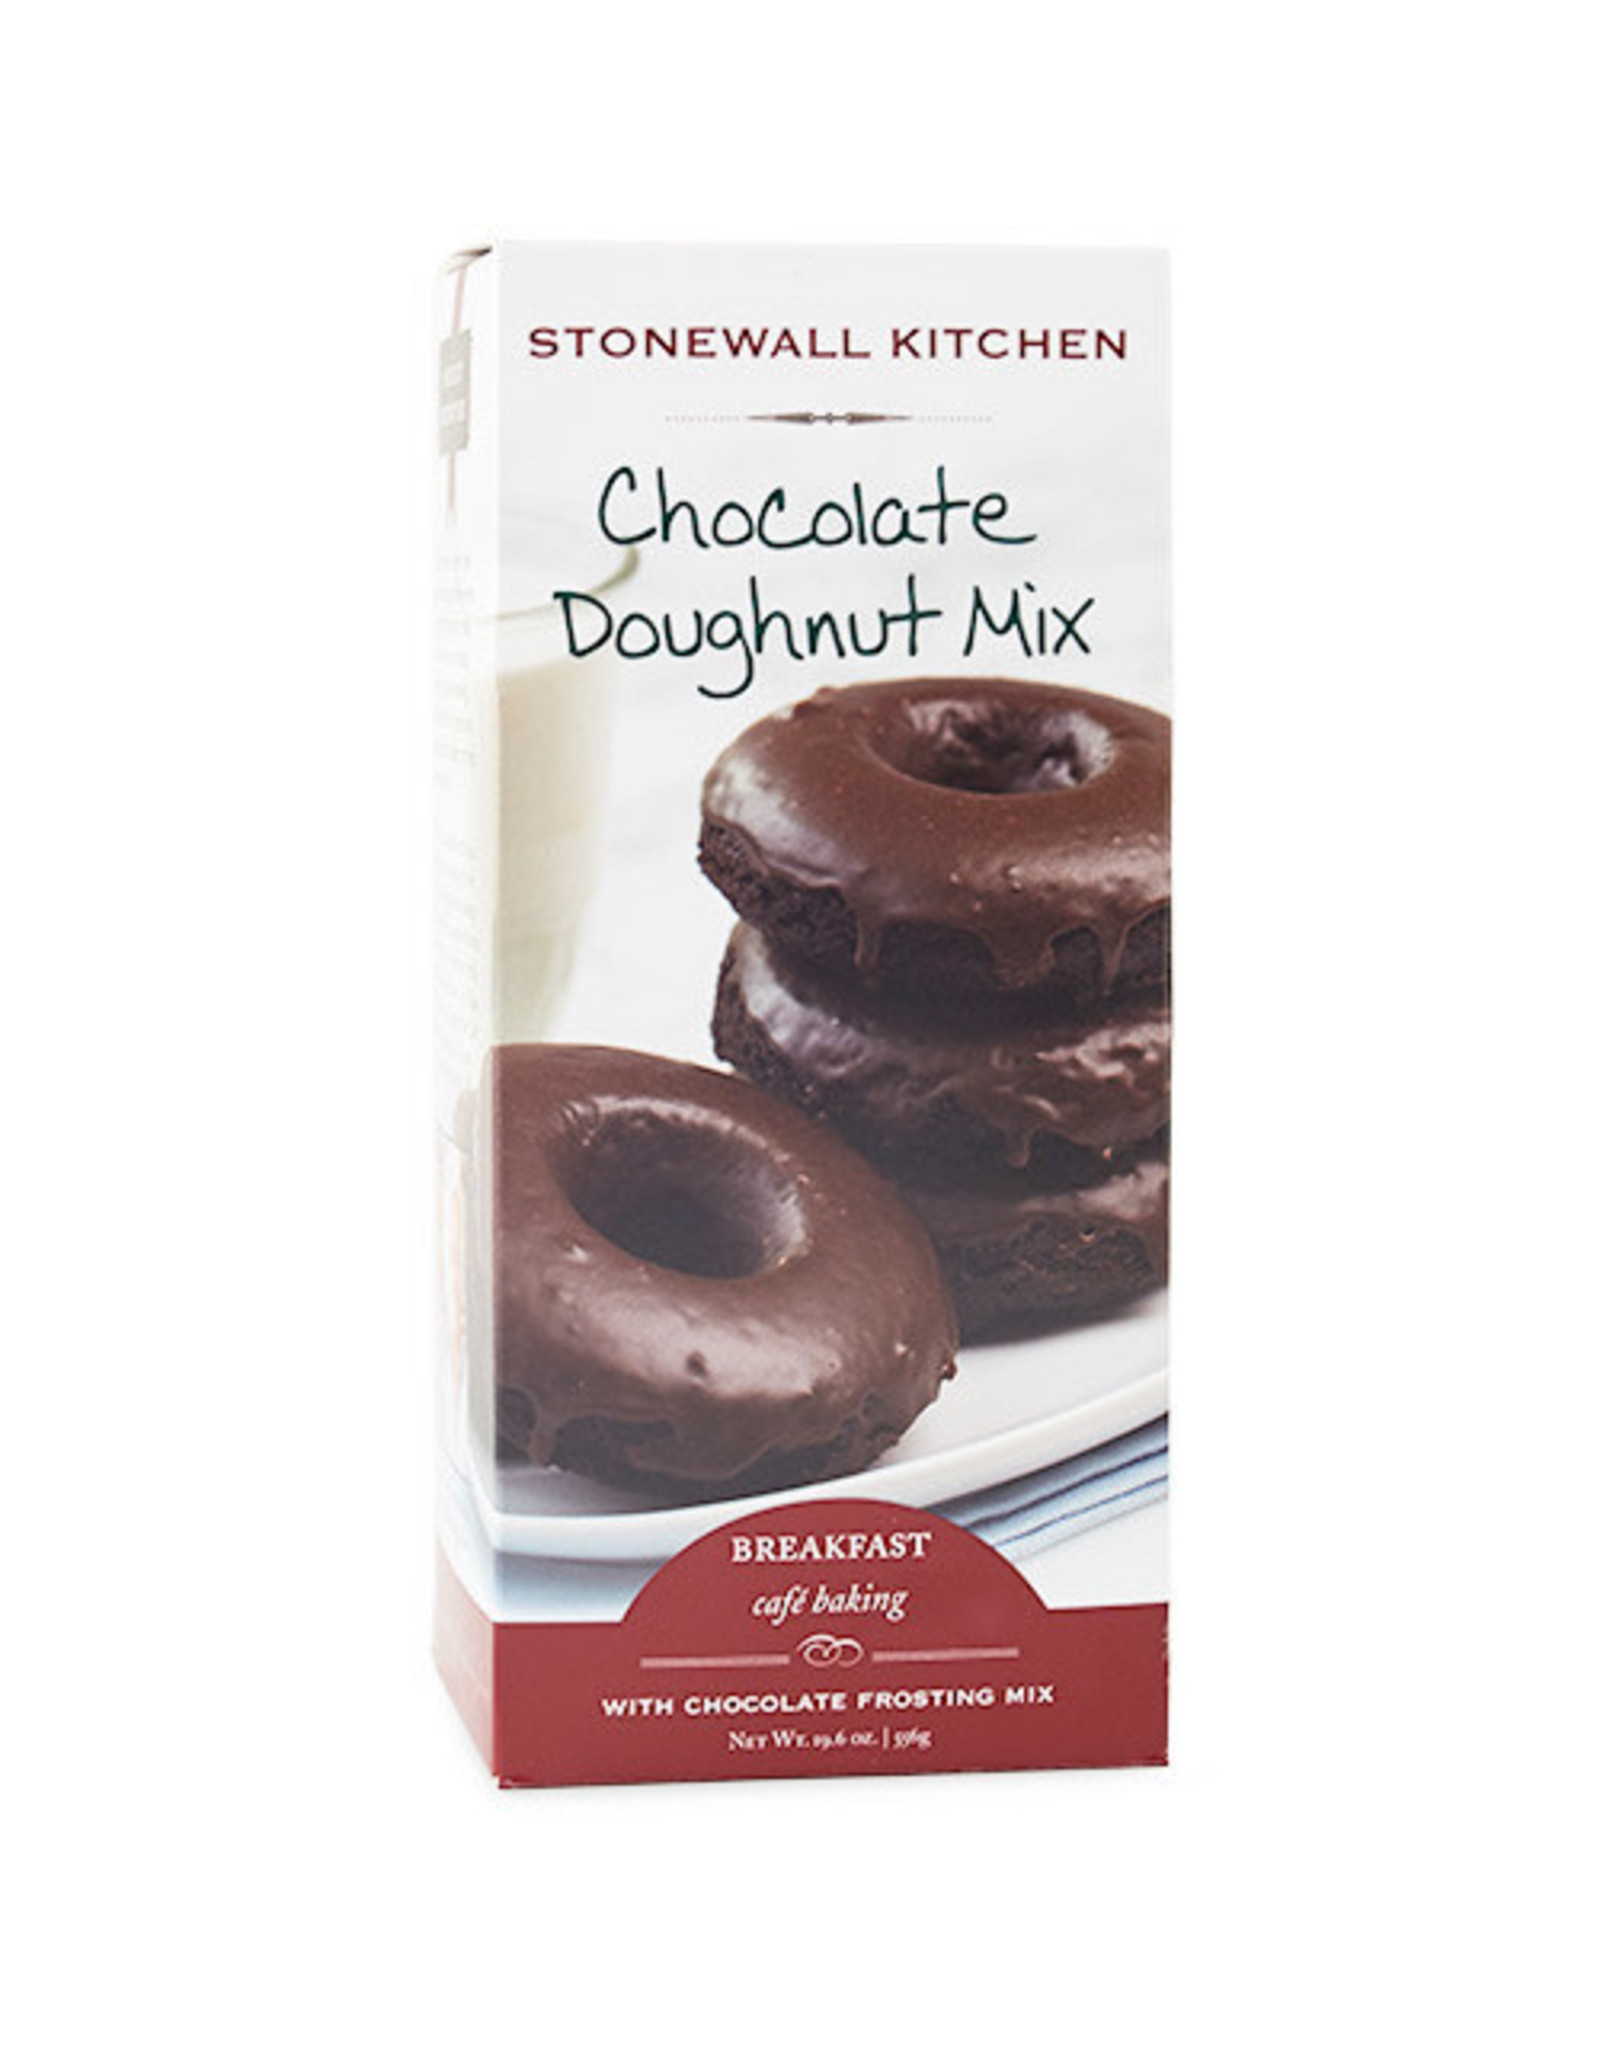 Stonewall Kitchen CHOCOLATE DOUGHNUT MIX